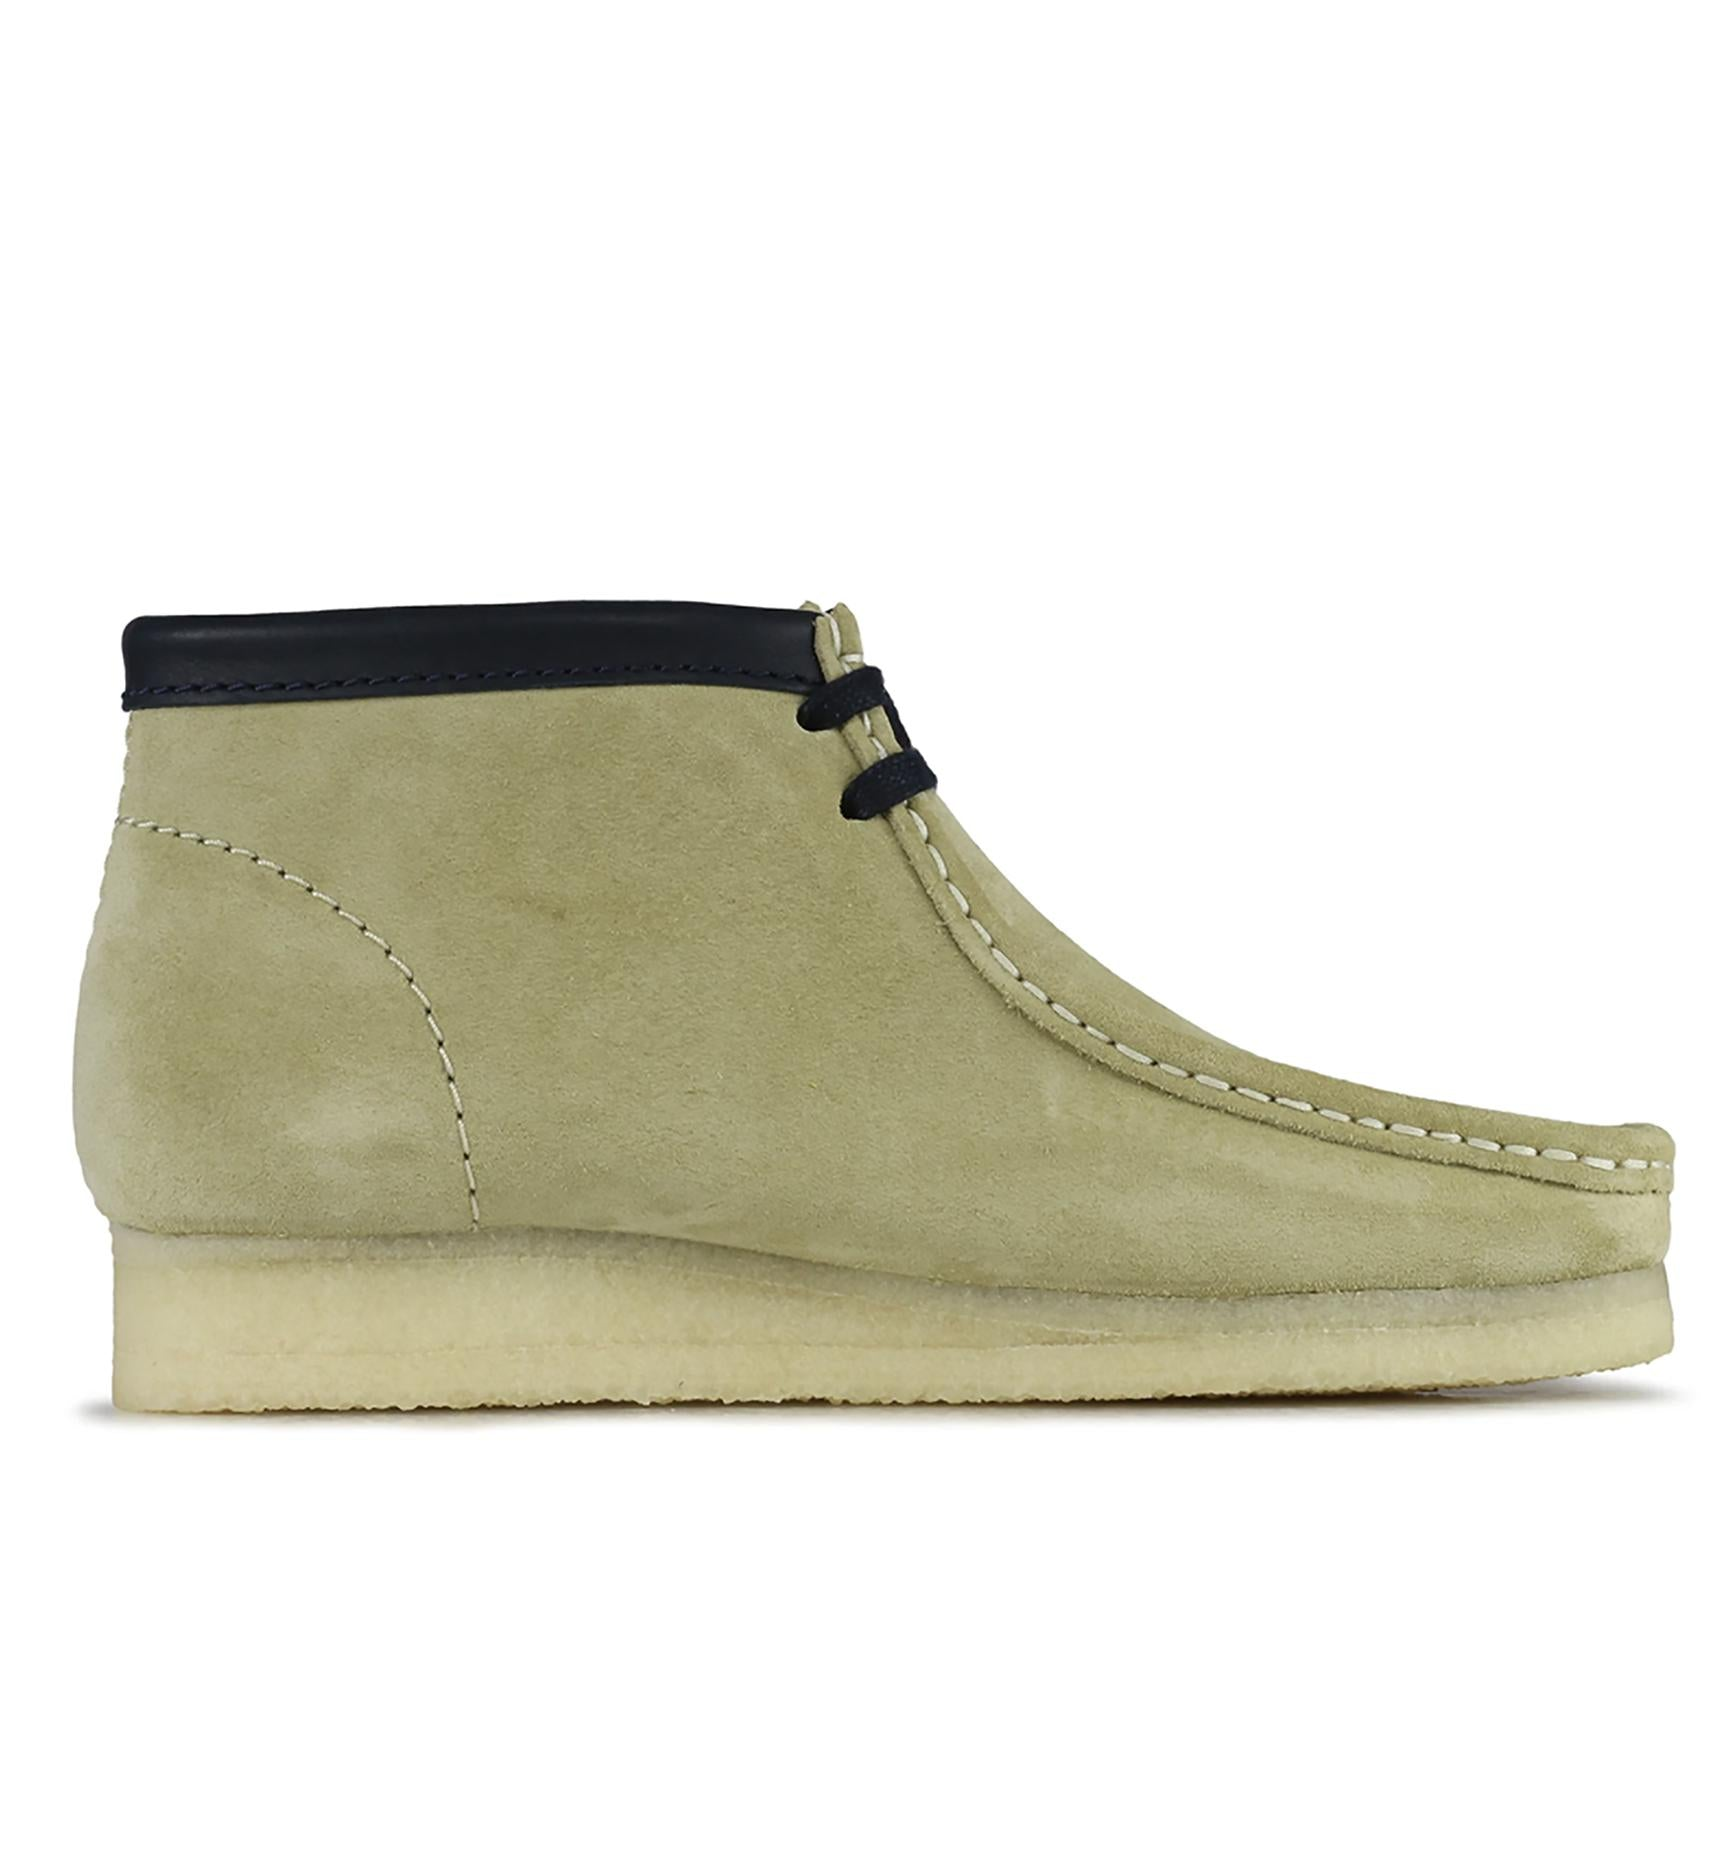 Clarks x Wu Wear Wallabee - Maple Footwear from Clarks 103448 in 8.5 and Natural and - Alife®